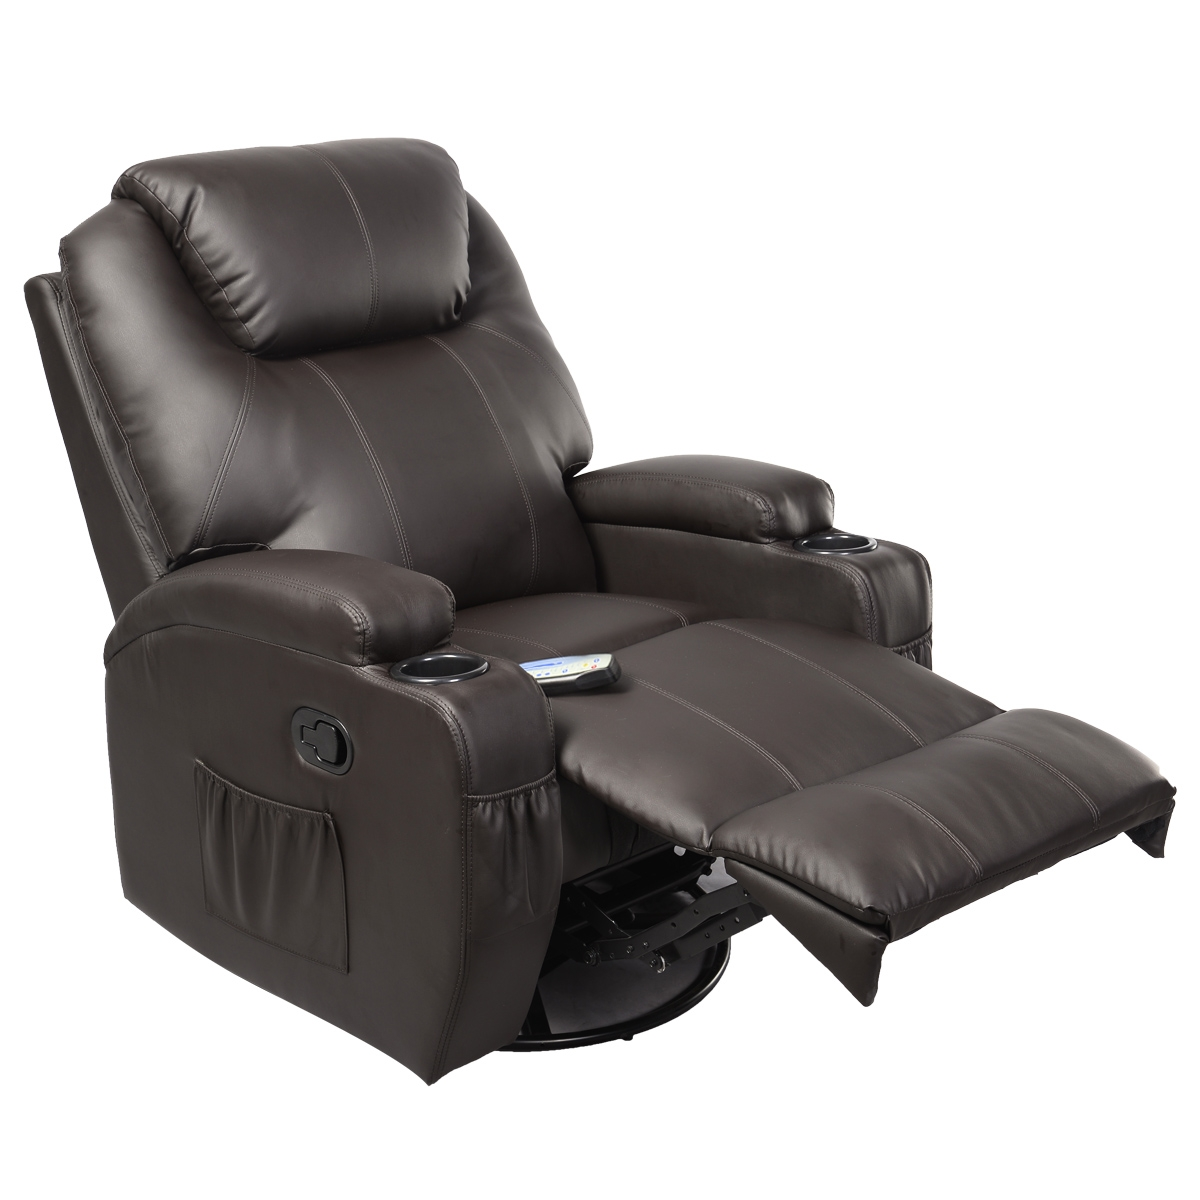 Featured Image of Sofa Chair Recliner